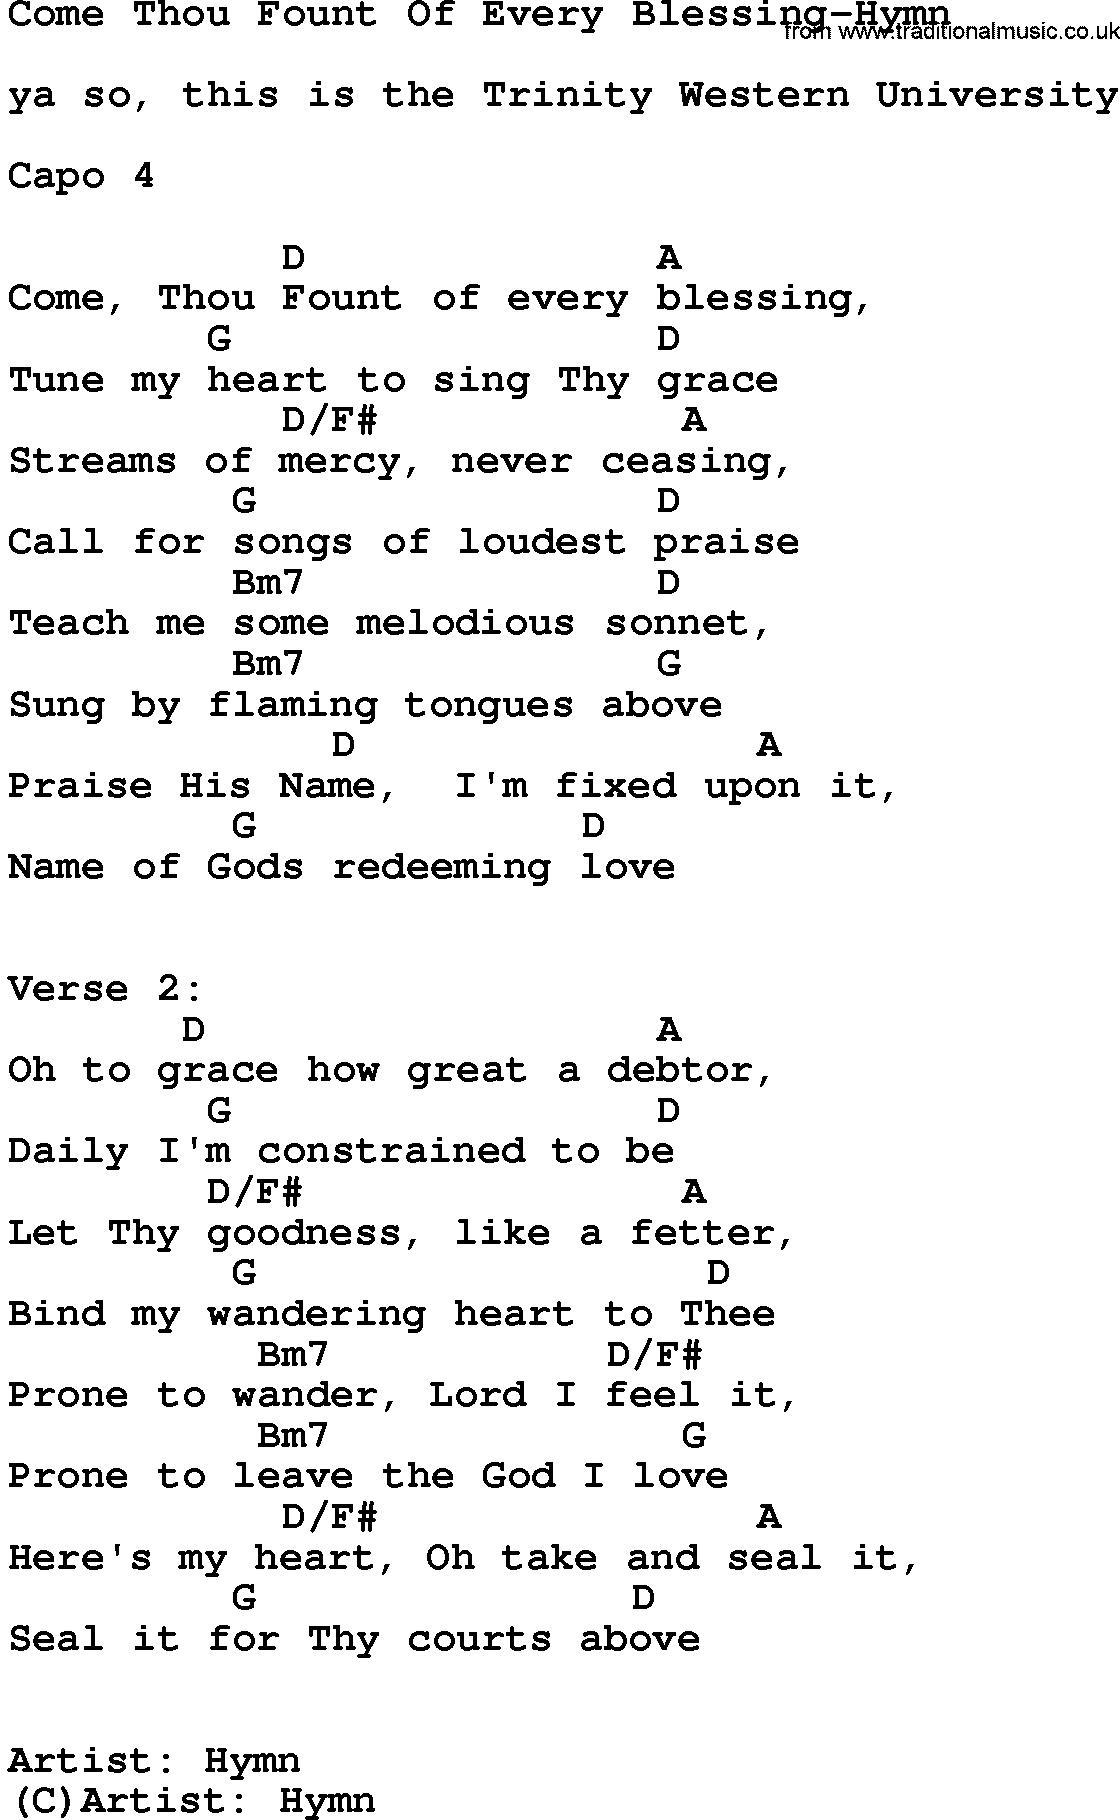 Come Thou Fount Chords Gospel Song Come Thou Fount Of Every Blessing Hymn Lyrics And Chords